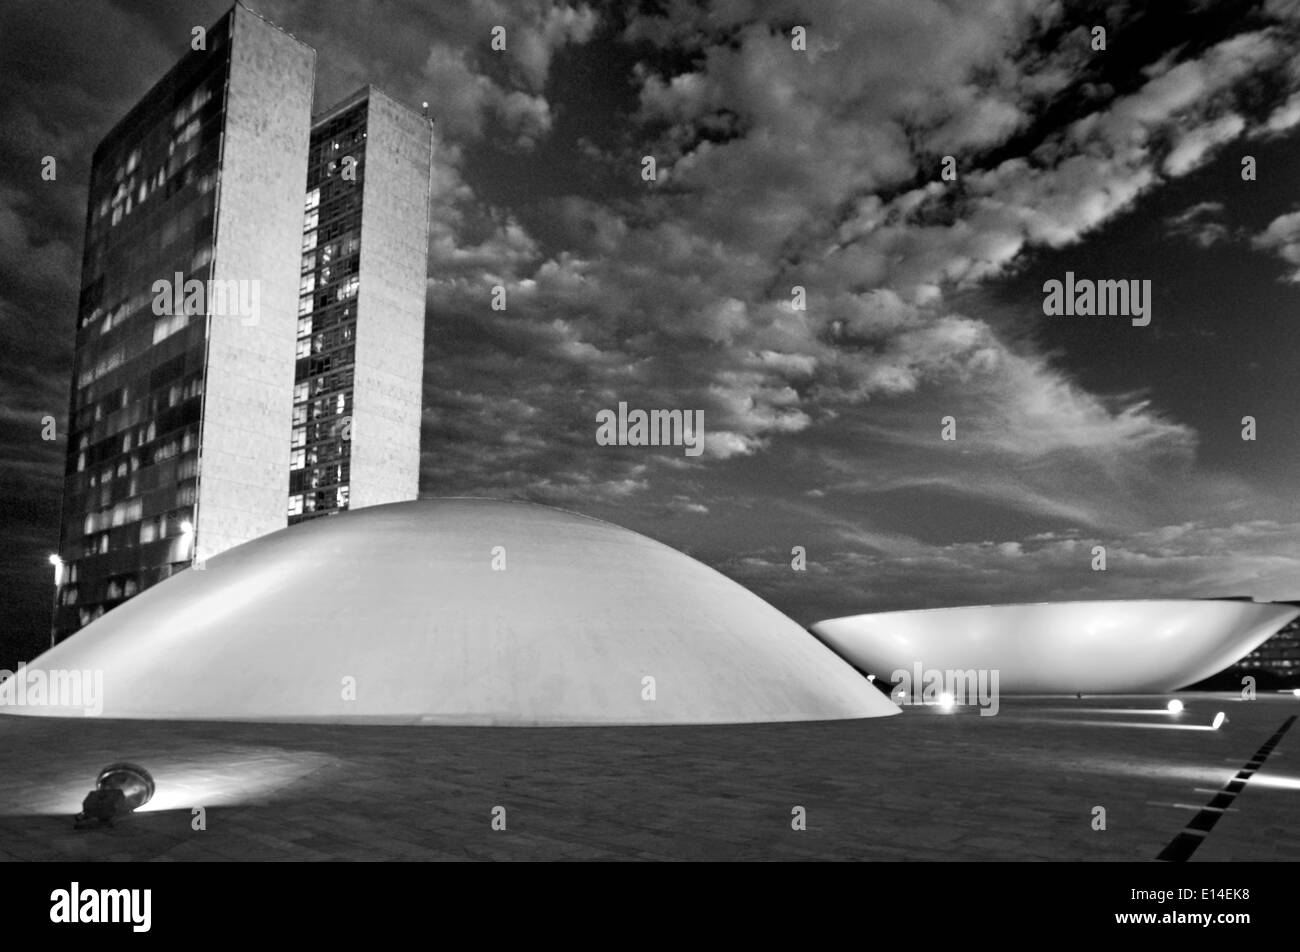 Brazil, Brasilia: Roof perspective of the National Congress at night in black and white version - Stock Image